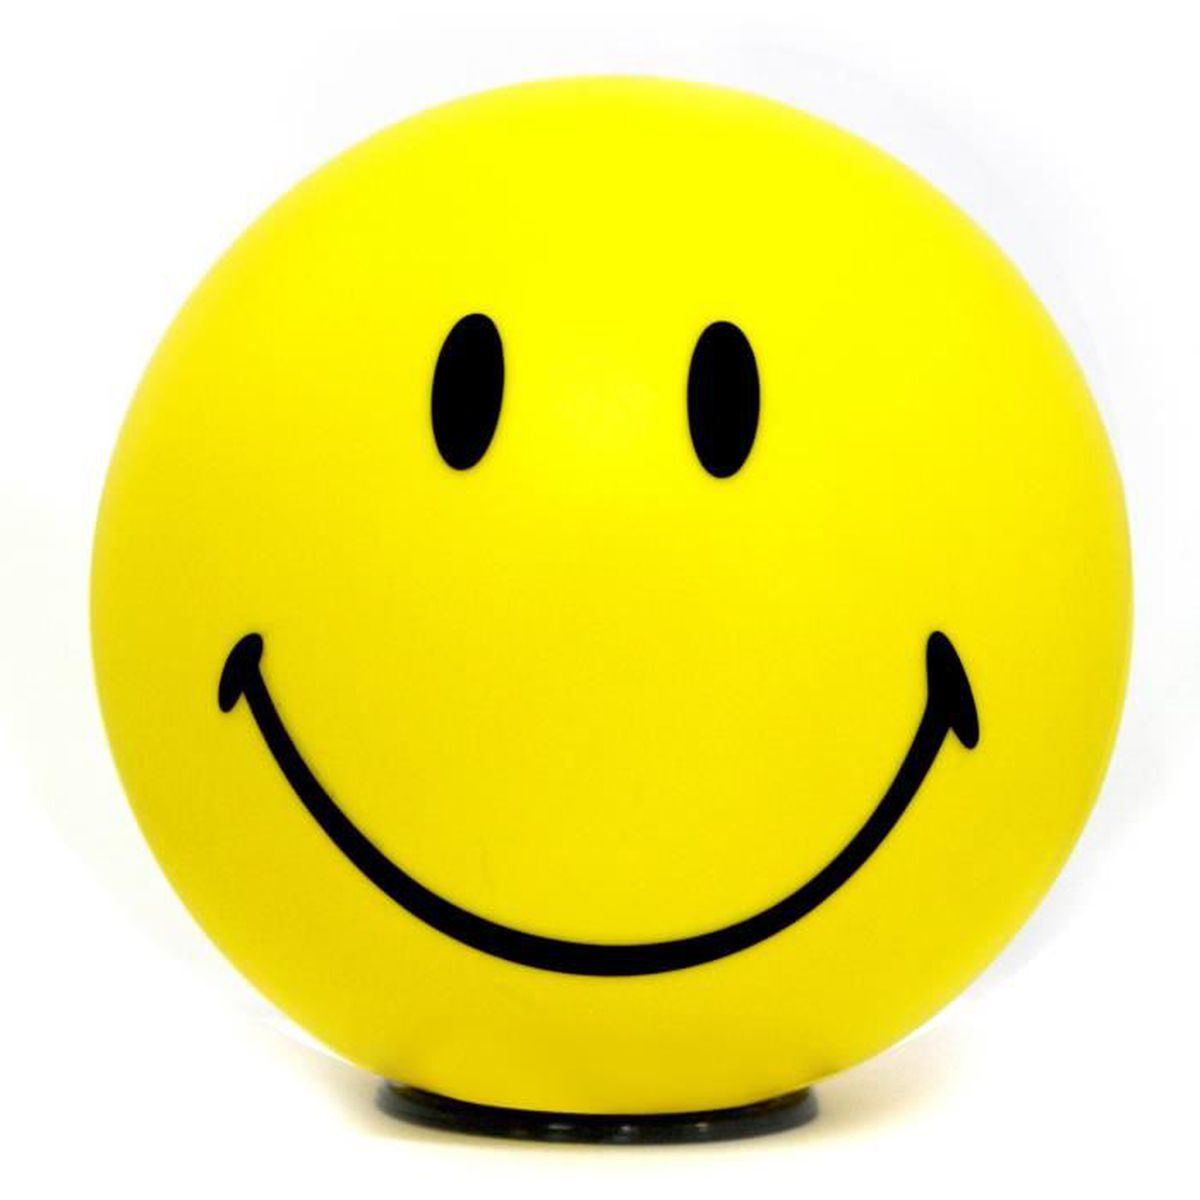 Lampe déco Smiley Happy - Emoticônes content - Jaune - Achat ...